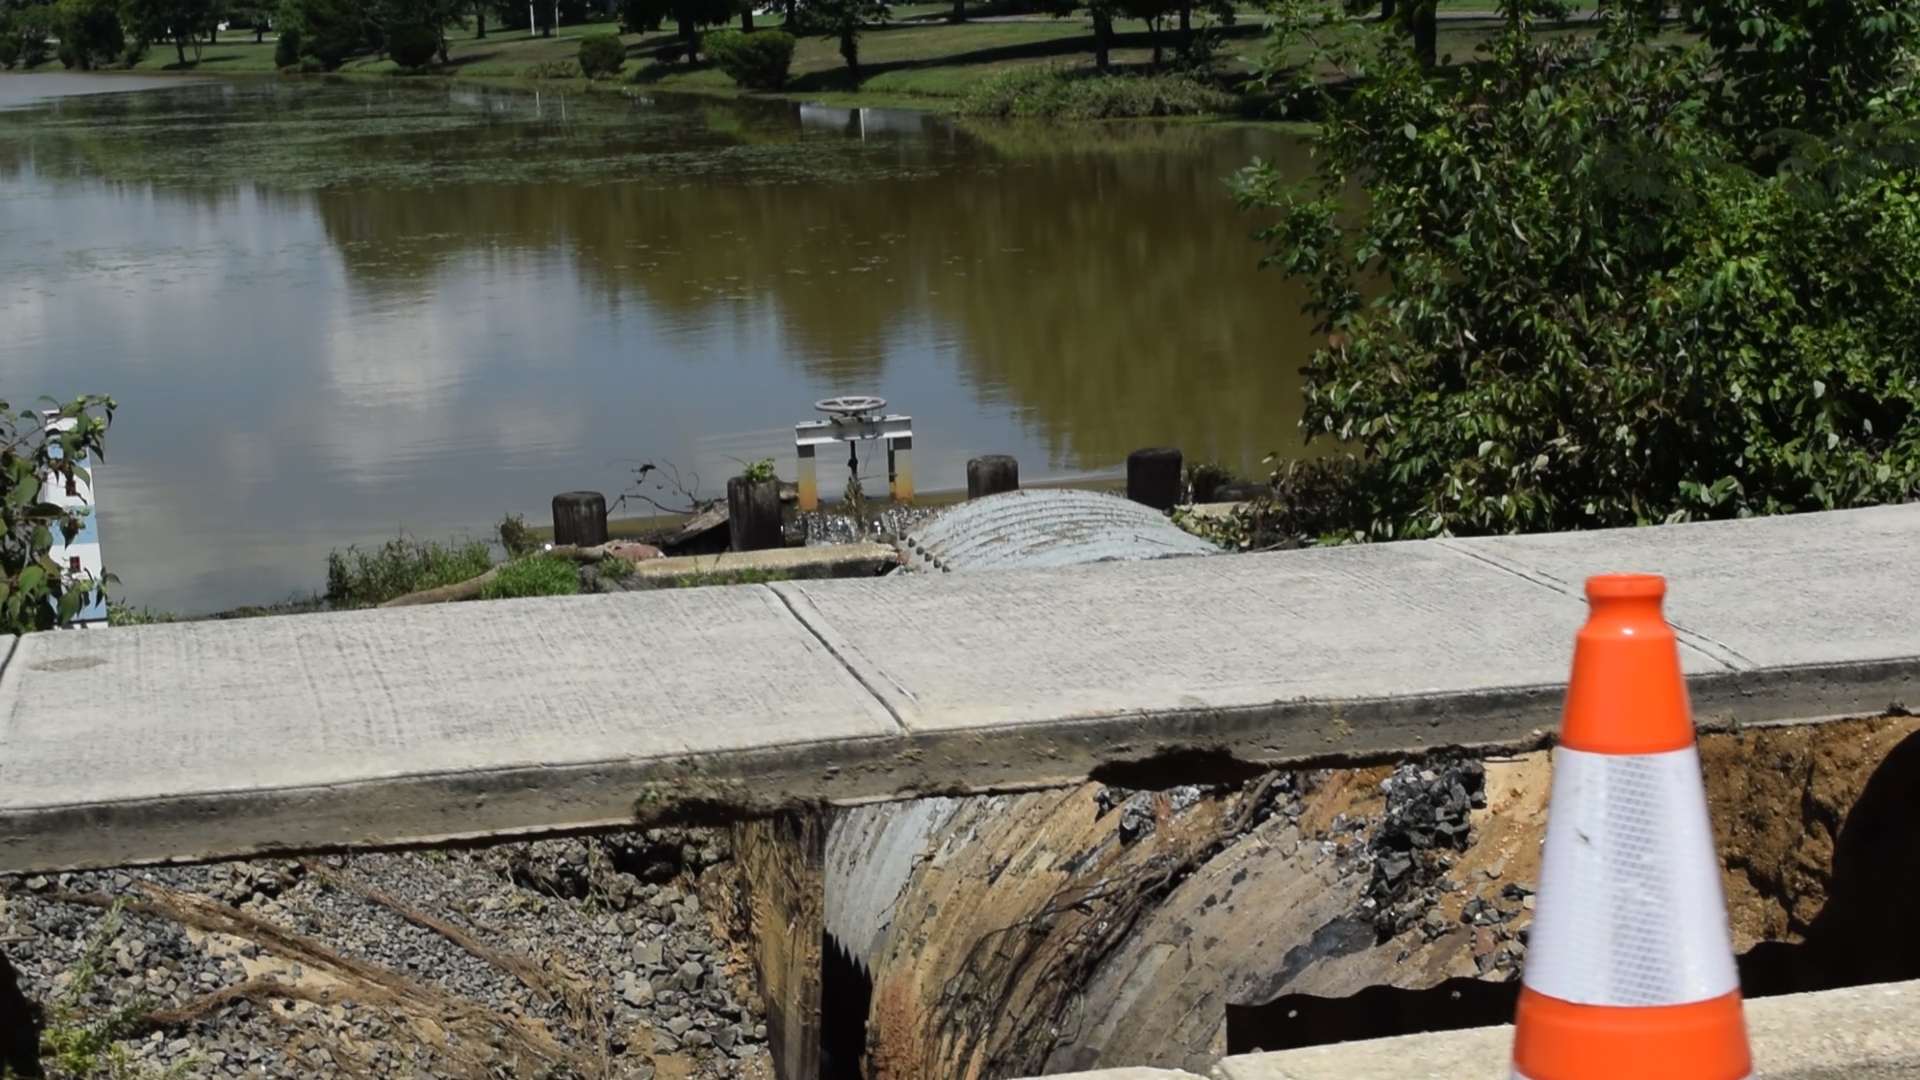 A damaged dam and culvert in Greenbriar I following the Aug. 13, 2018 storm. (Photo: Daniel Nee)